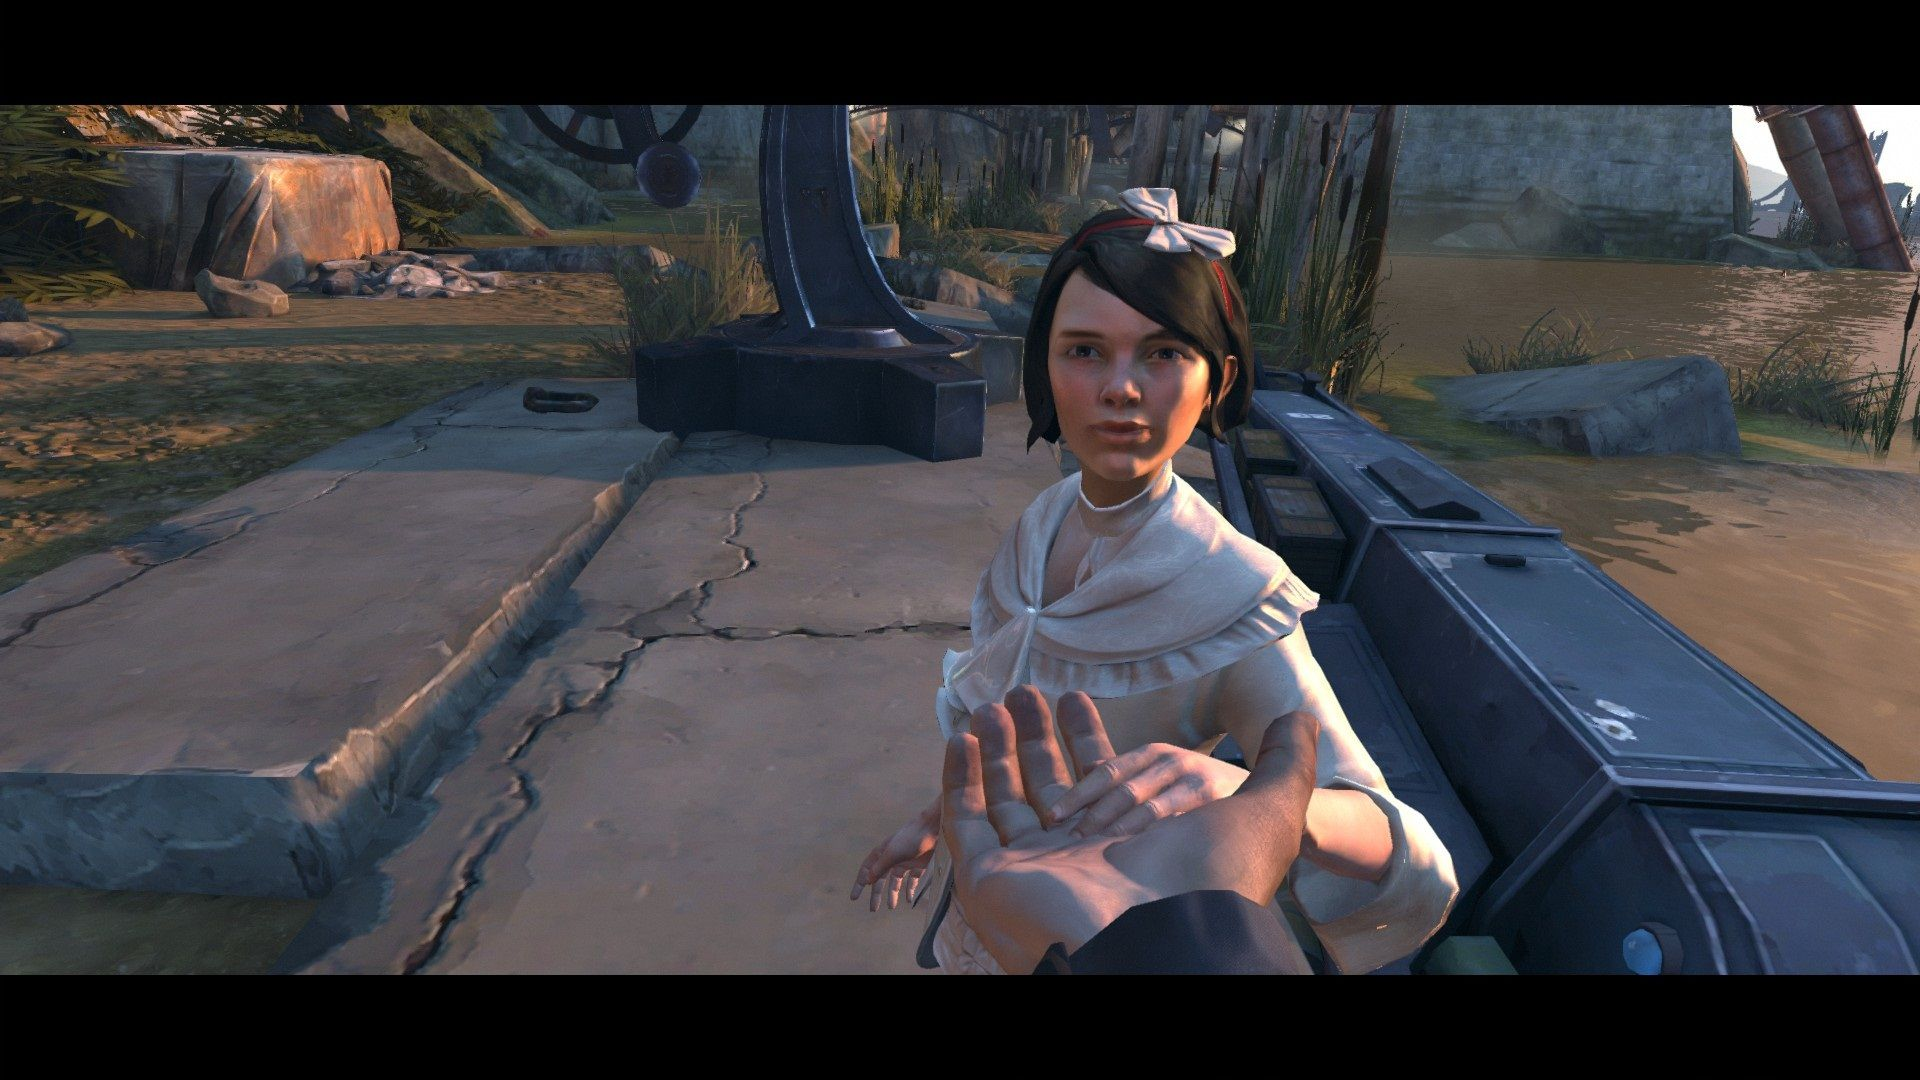 Dishonored Game Review Bioshock, The cat returns, Games